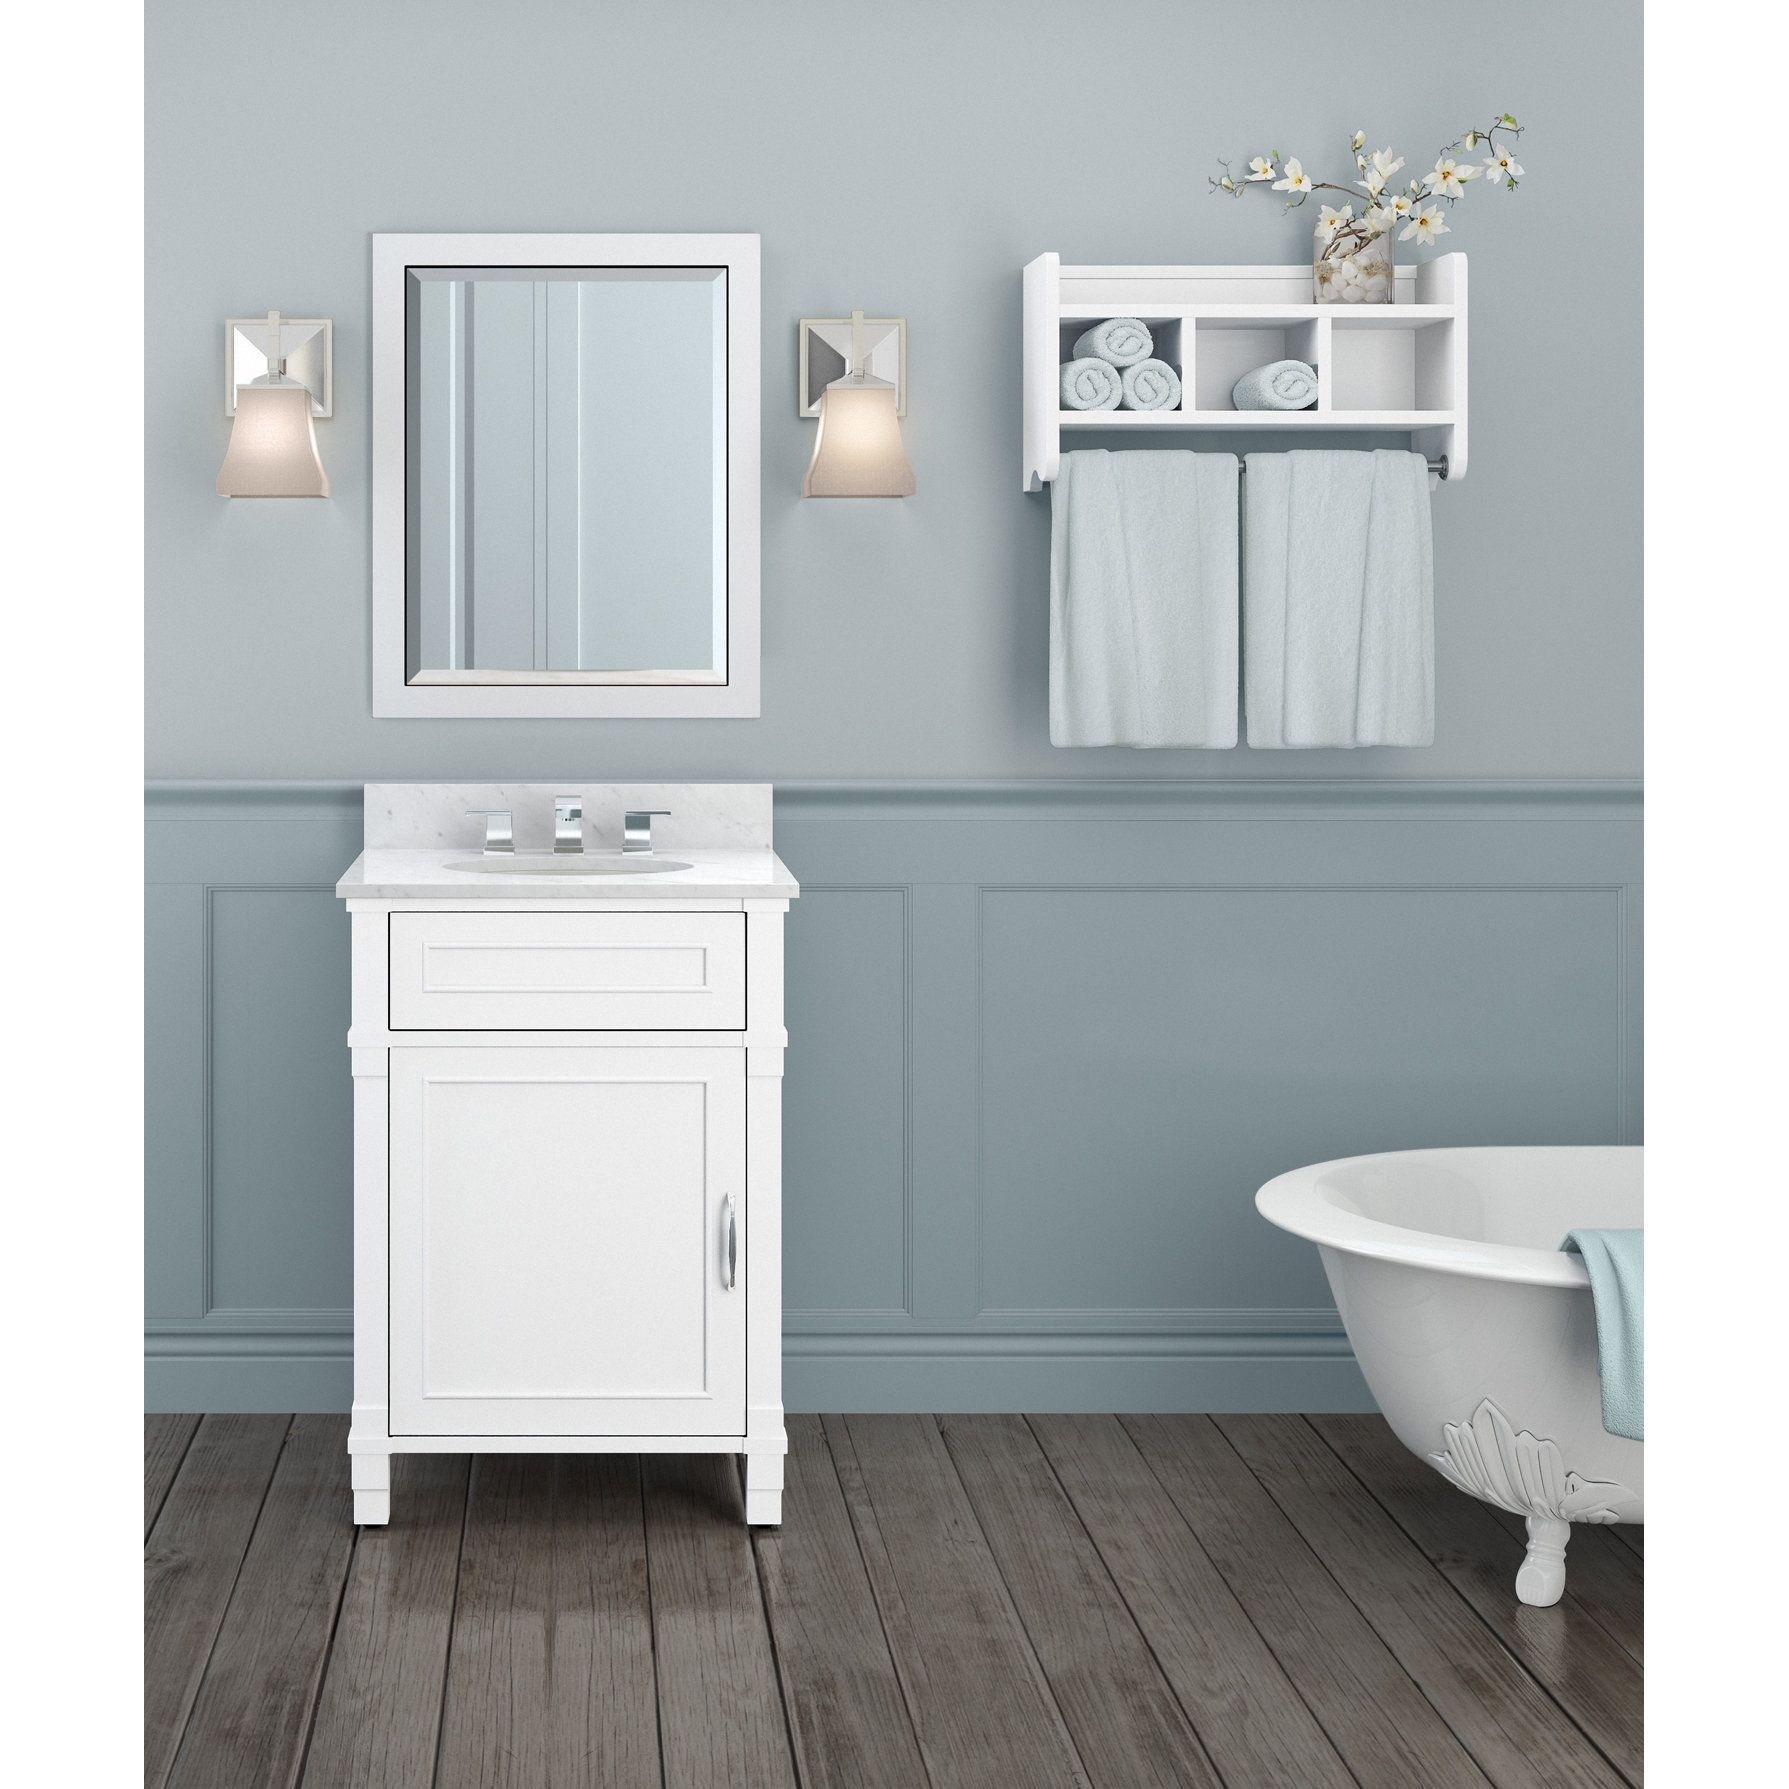 Alaterre Williamsburg Marble Sink White 24-in Bathroom Vanity with ...